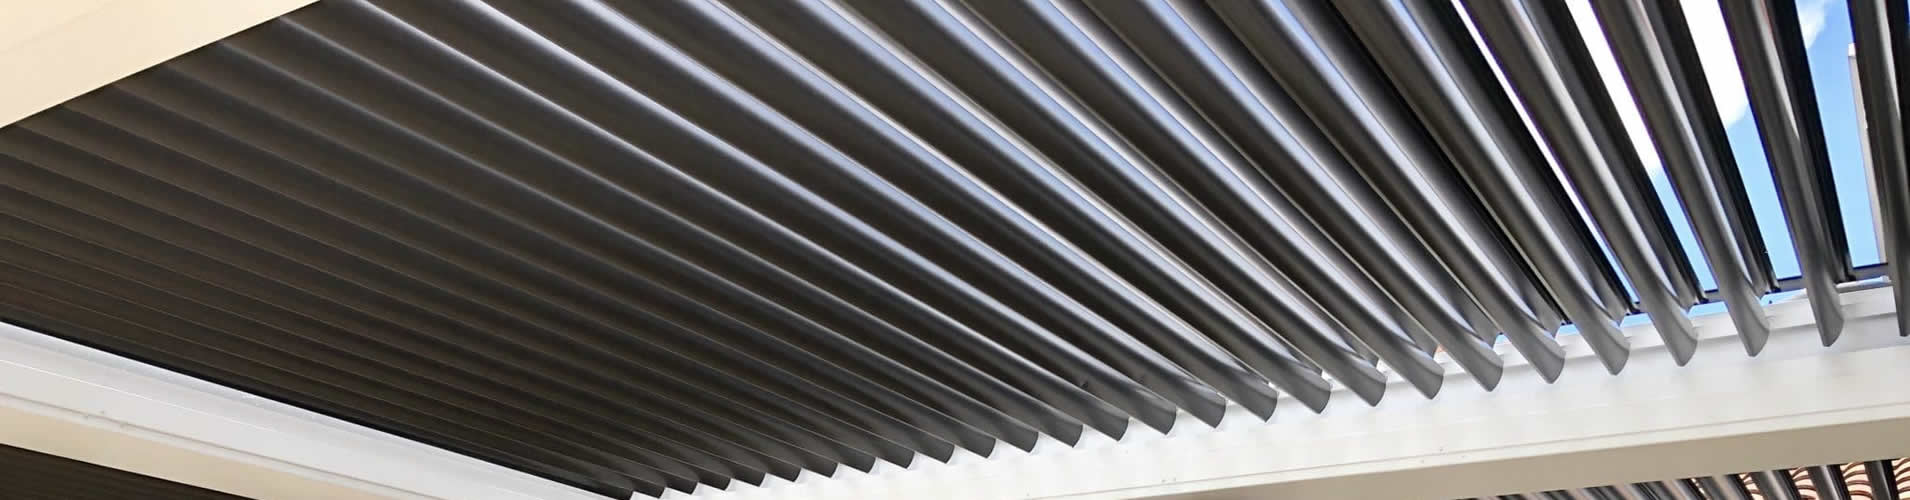 Louvered Roofs - Austin, TX